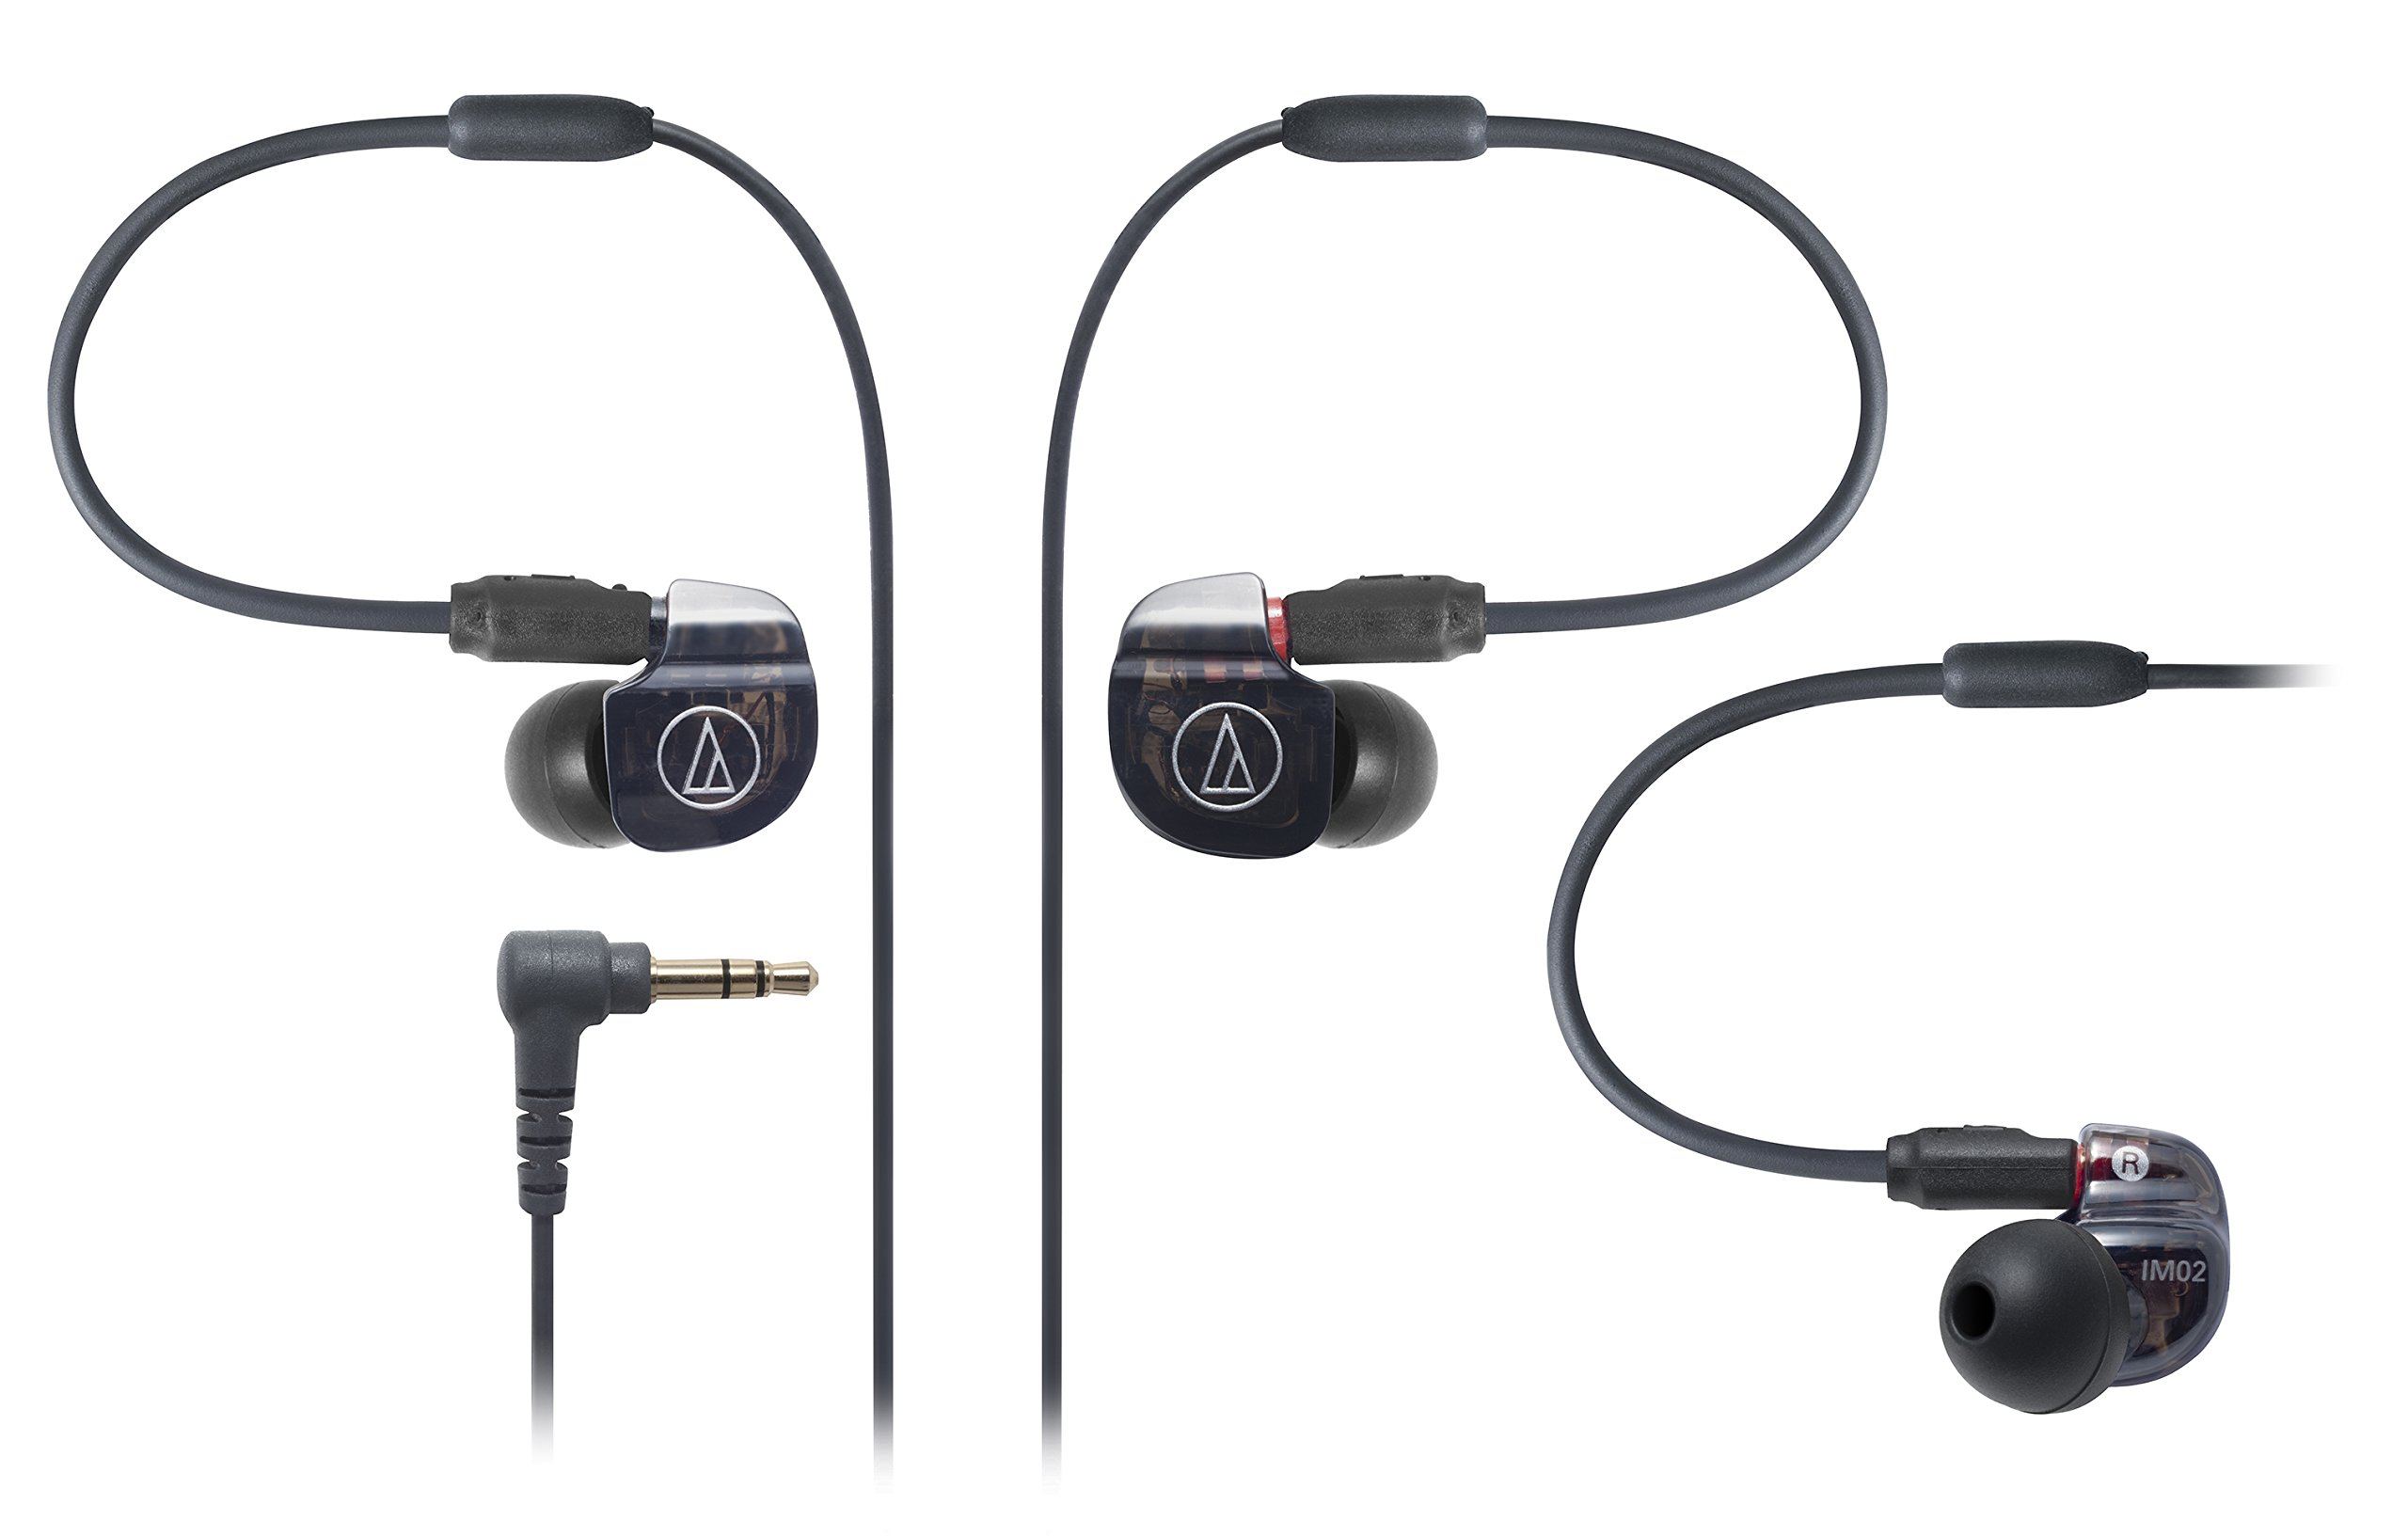 Audio Technica ATH-IM02 SonicPro Balanced In-Ear Monitor Headphones